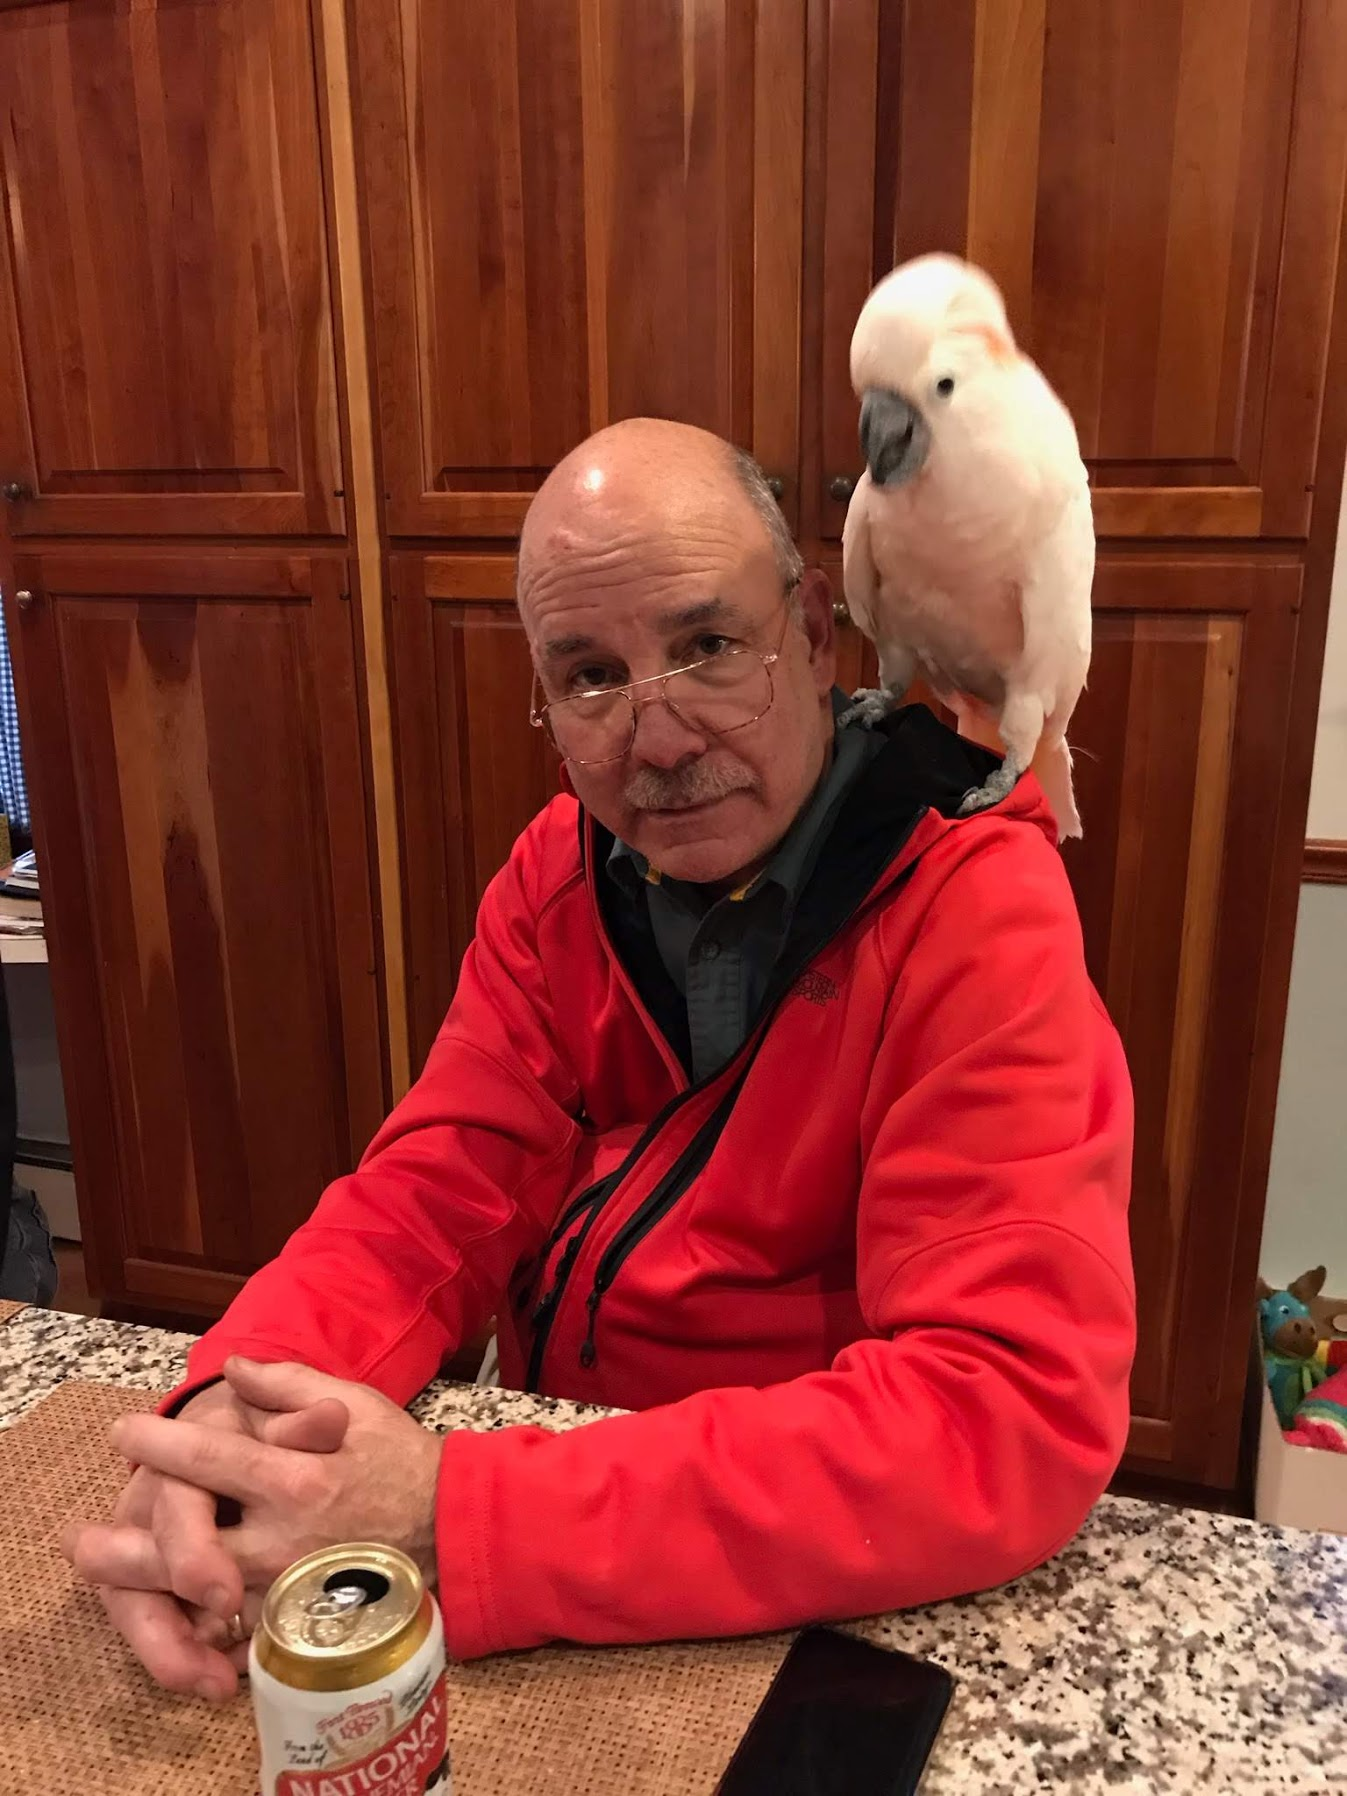 My Dad and a bird